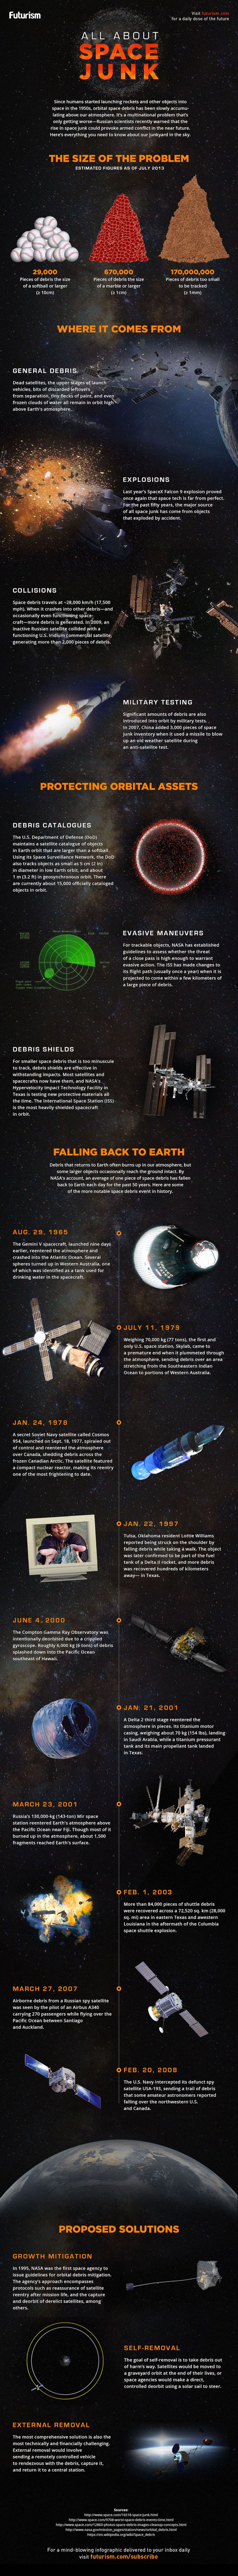 Junkyard In The Sky [Infographic] Earth's space junk problem is getting worse every day.